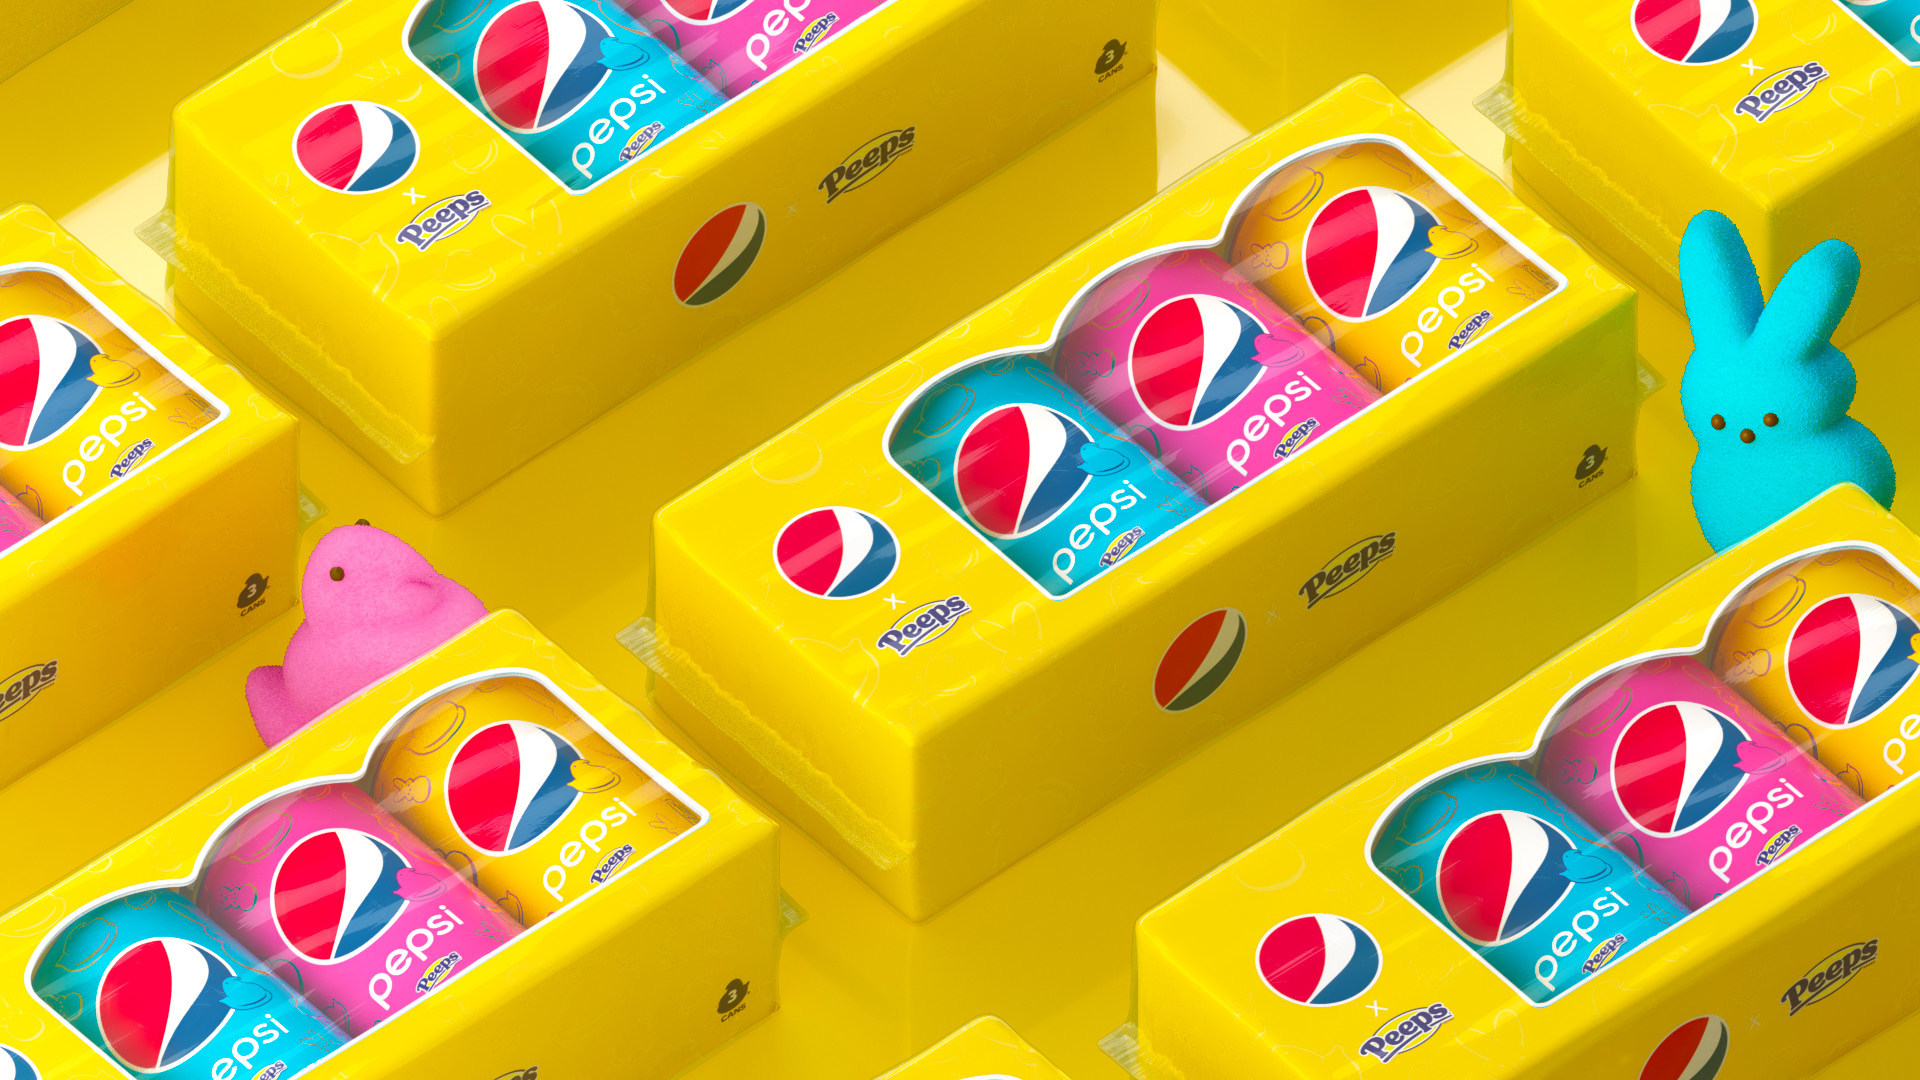 PEPSI x PEEPS cola packaging